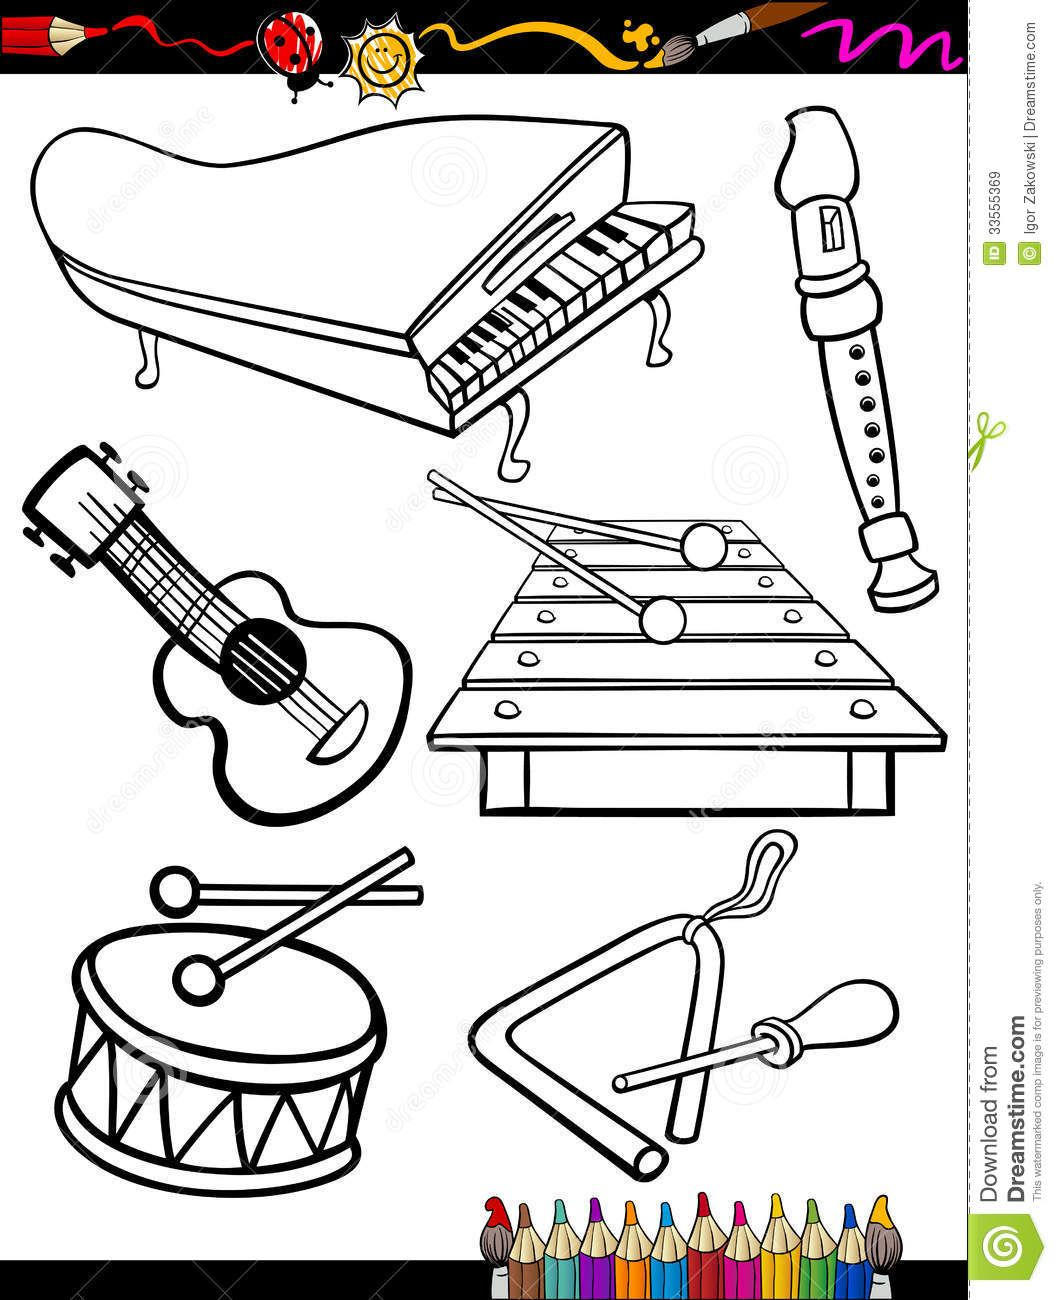 Musical Instruments Coloring Pages Music Coloring Music Coloring Sheets Musical Instruments Drawing